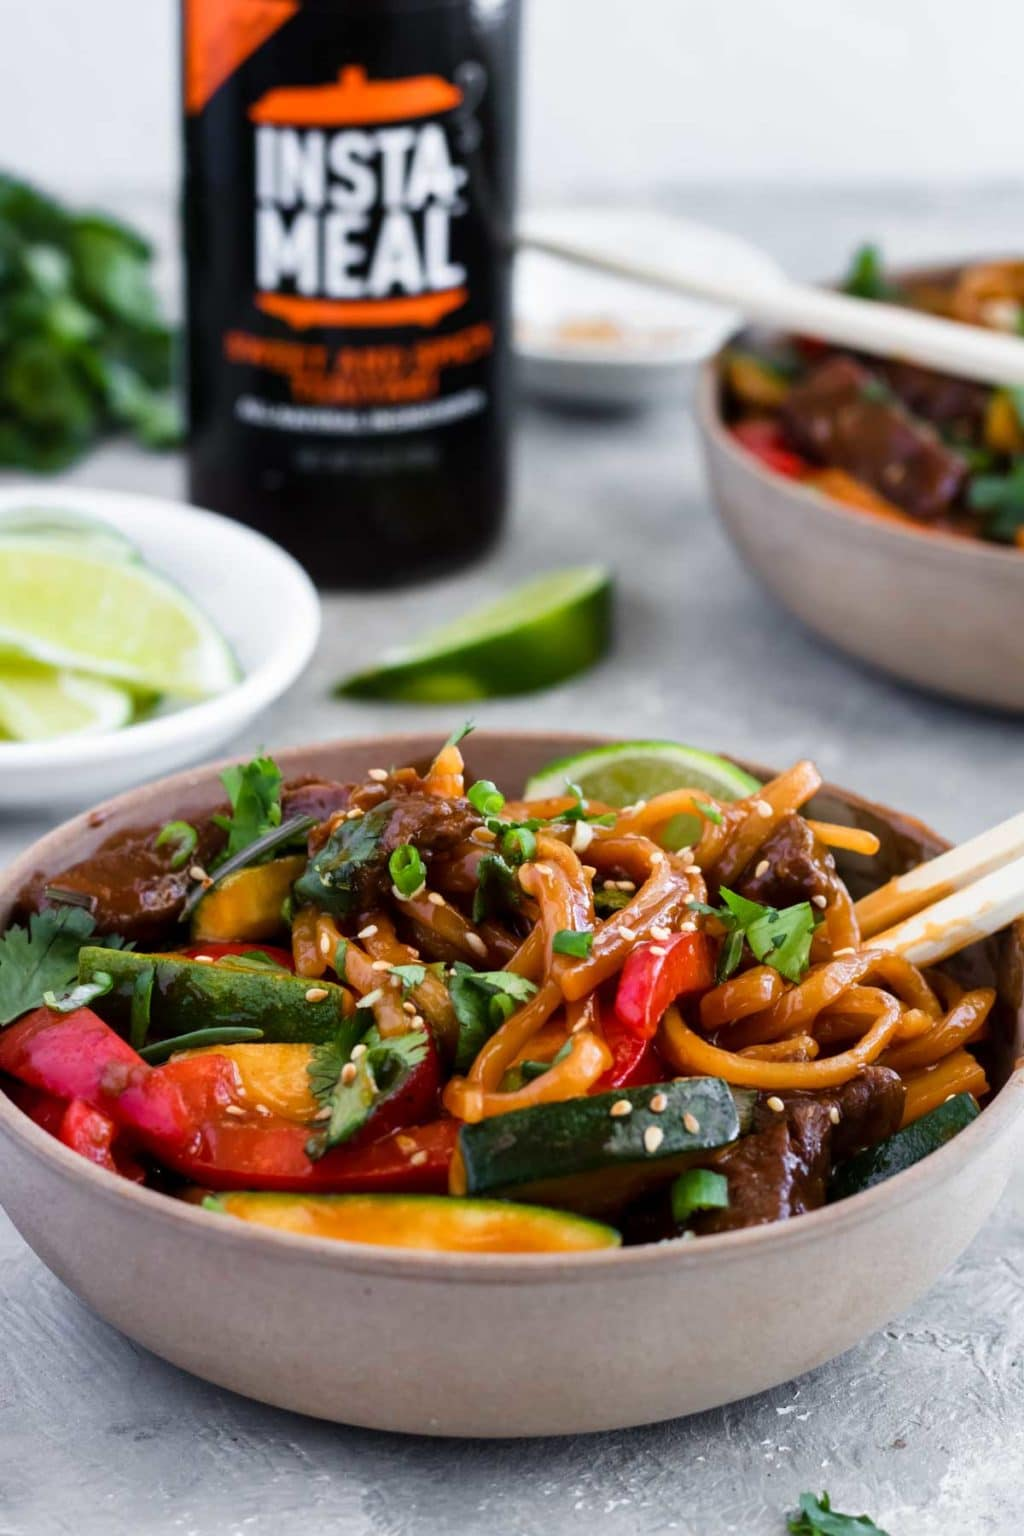 Instant Pot Teriyaki Beef Noodles in a bowl with an Instant Pot Sauce bottle in the background and a bowl of limes